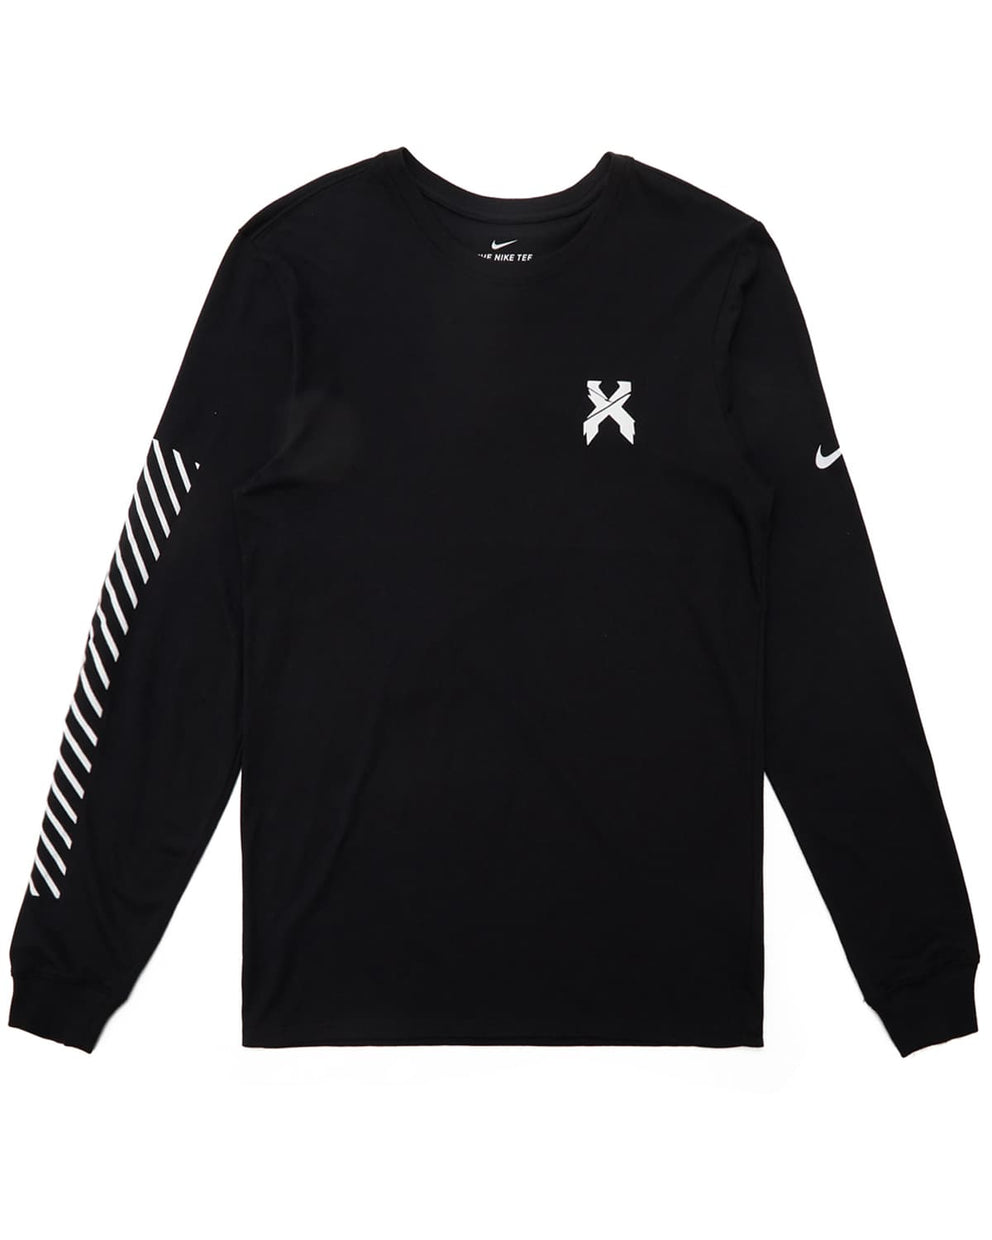 Excision x Nike 'Sliced' Logo Long Sleeve Tee